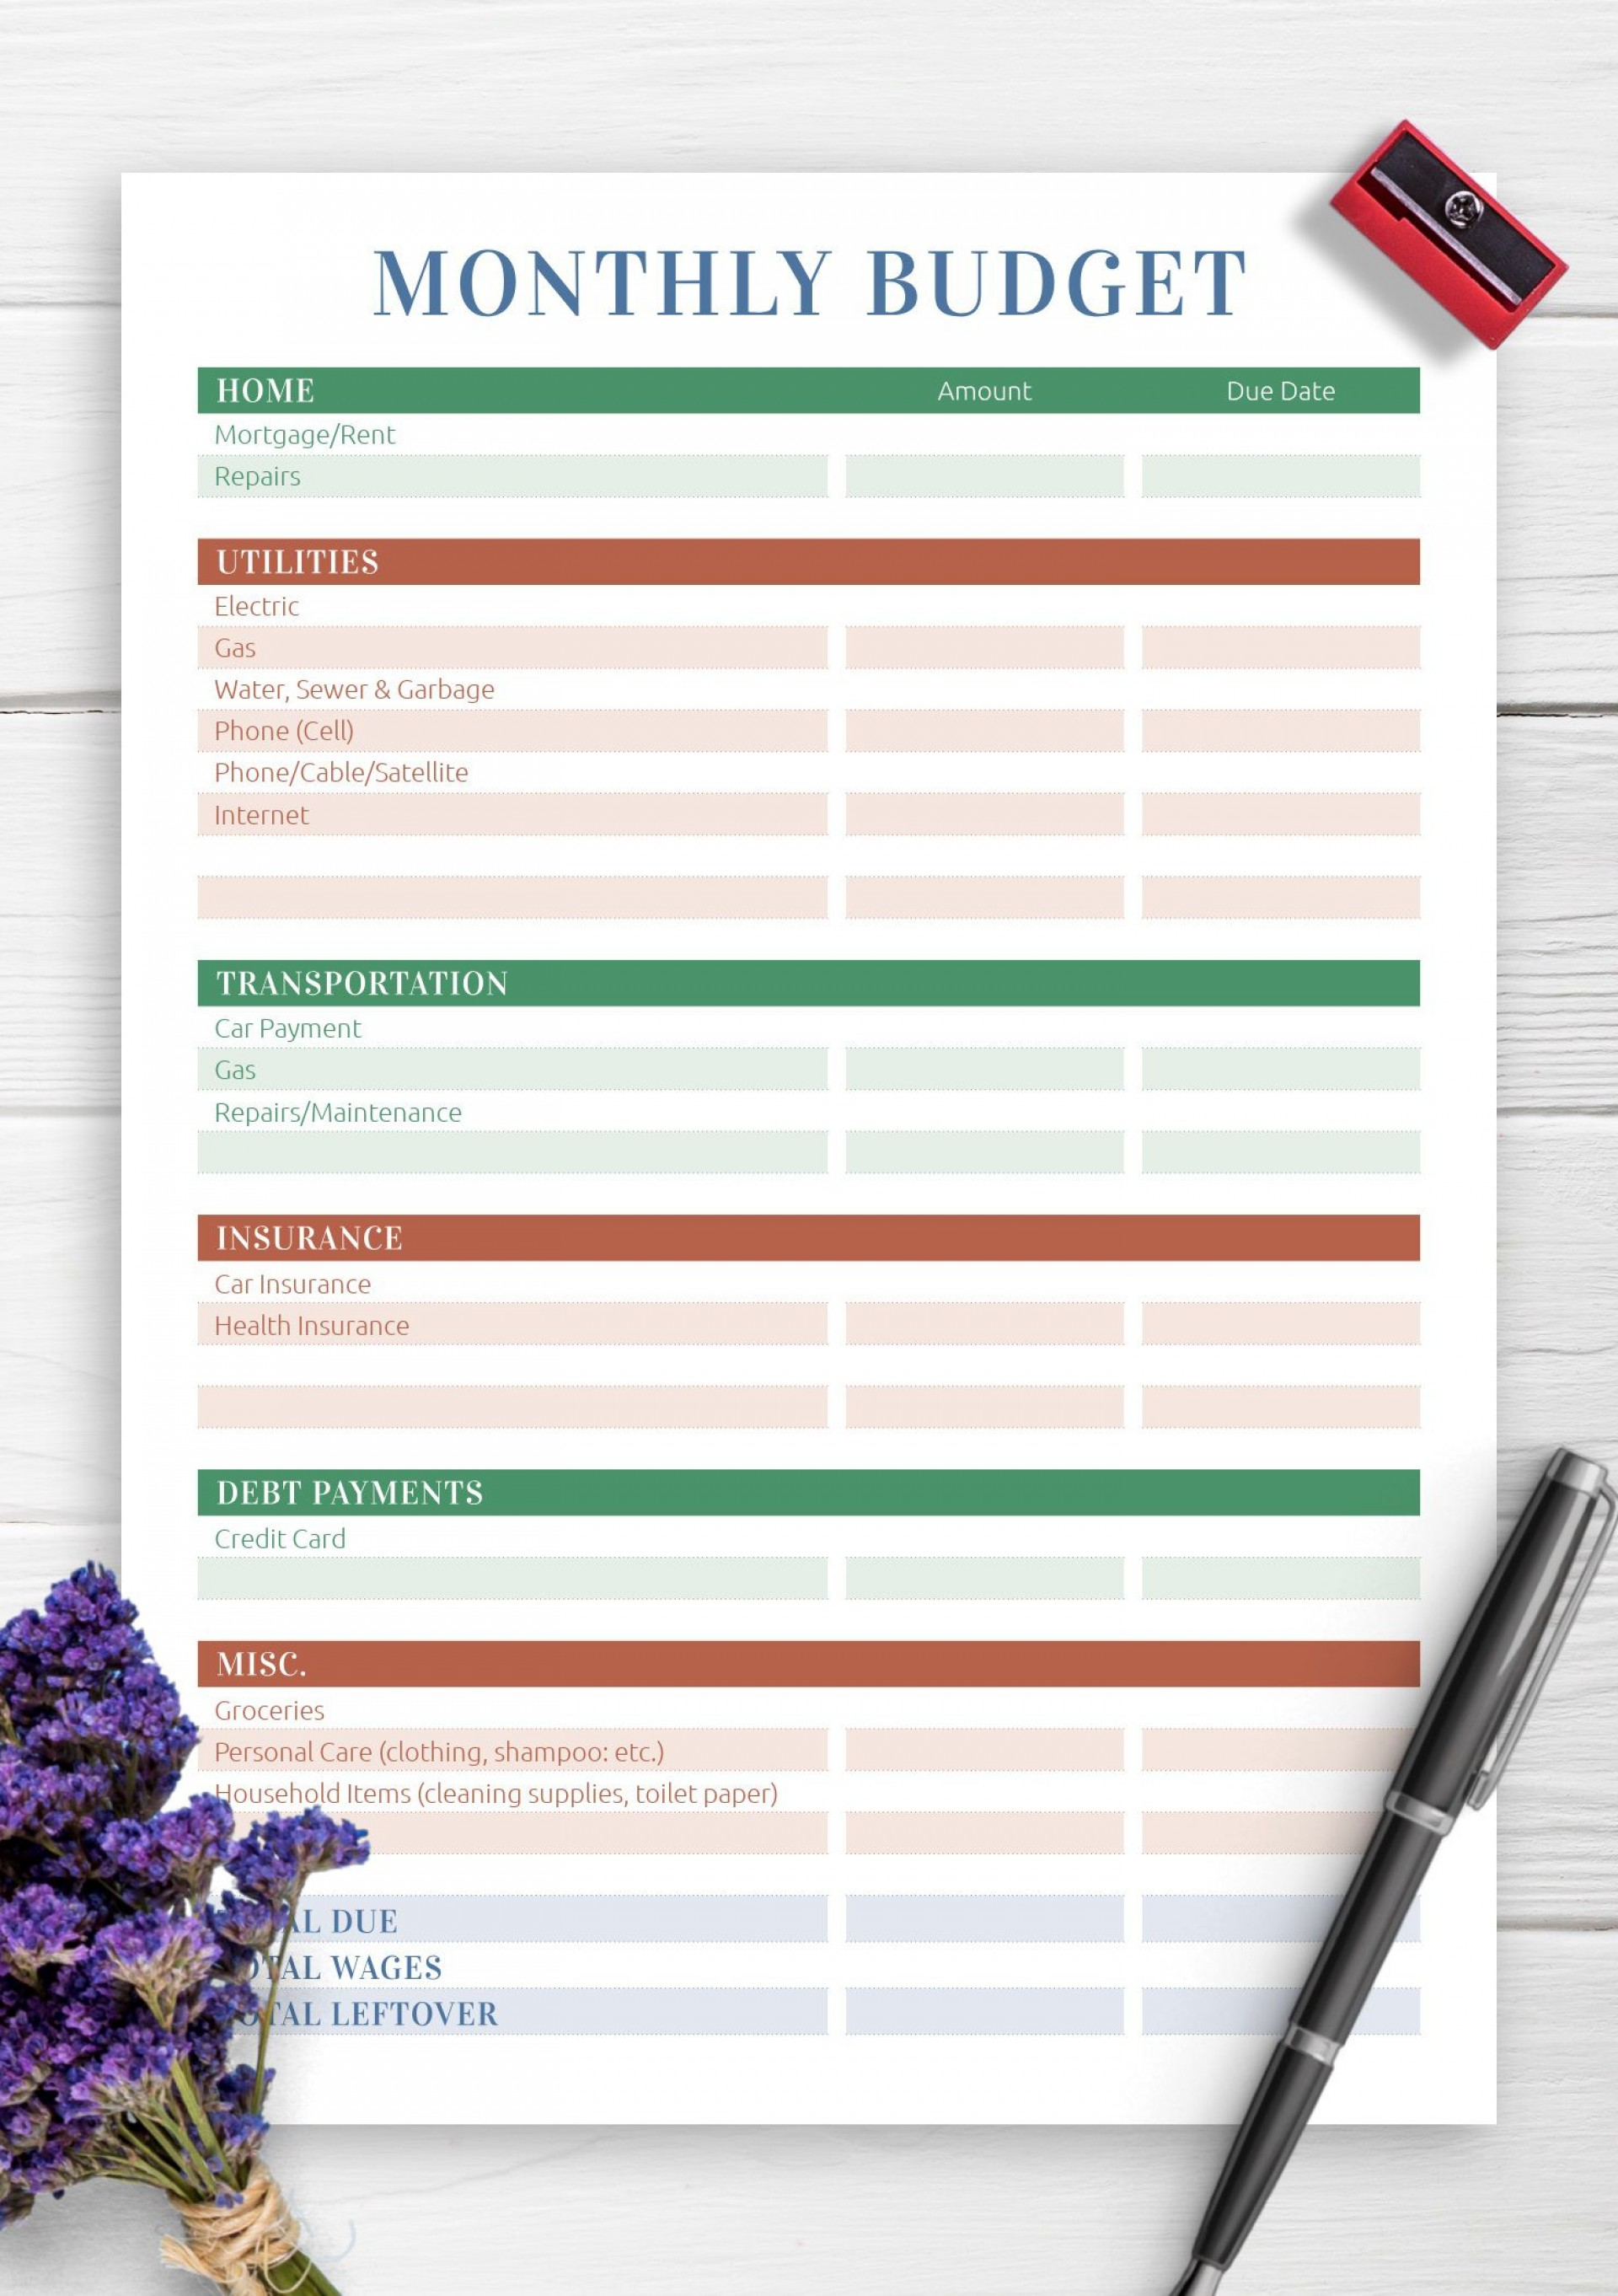 007 Marvelou Free Printable Monthly Household Budget Template Idea  Expense1920